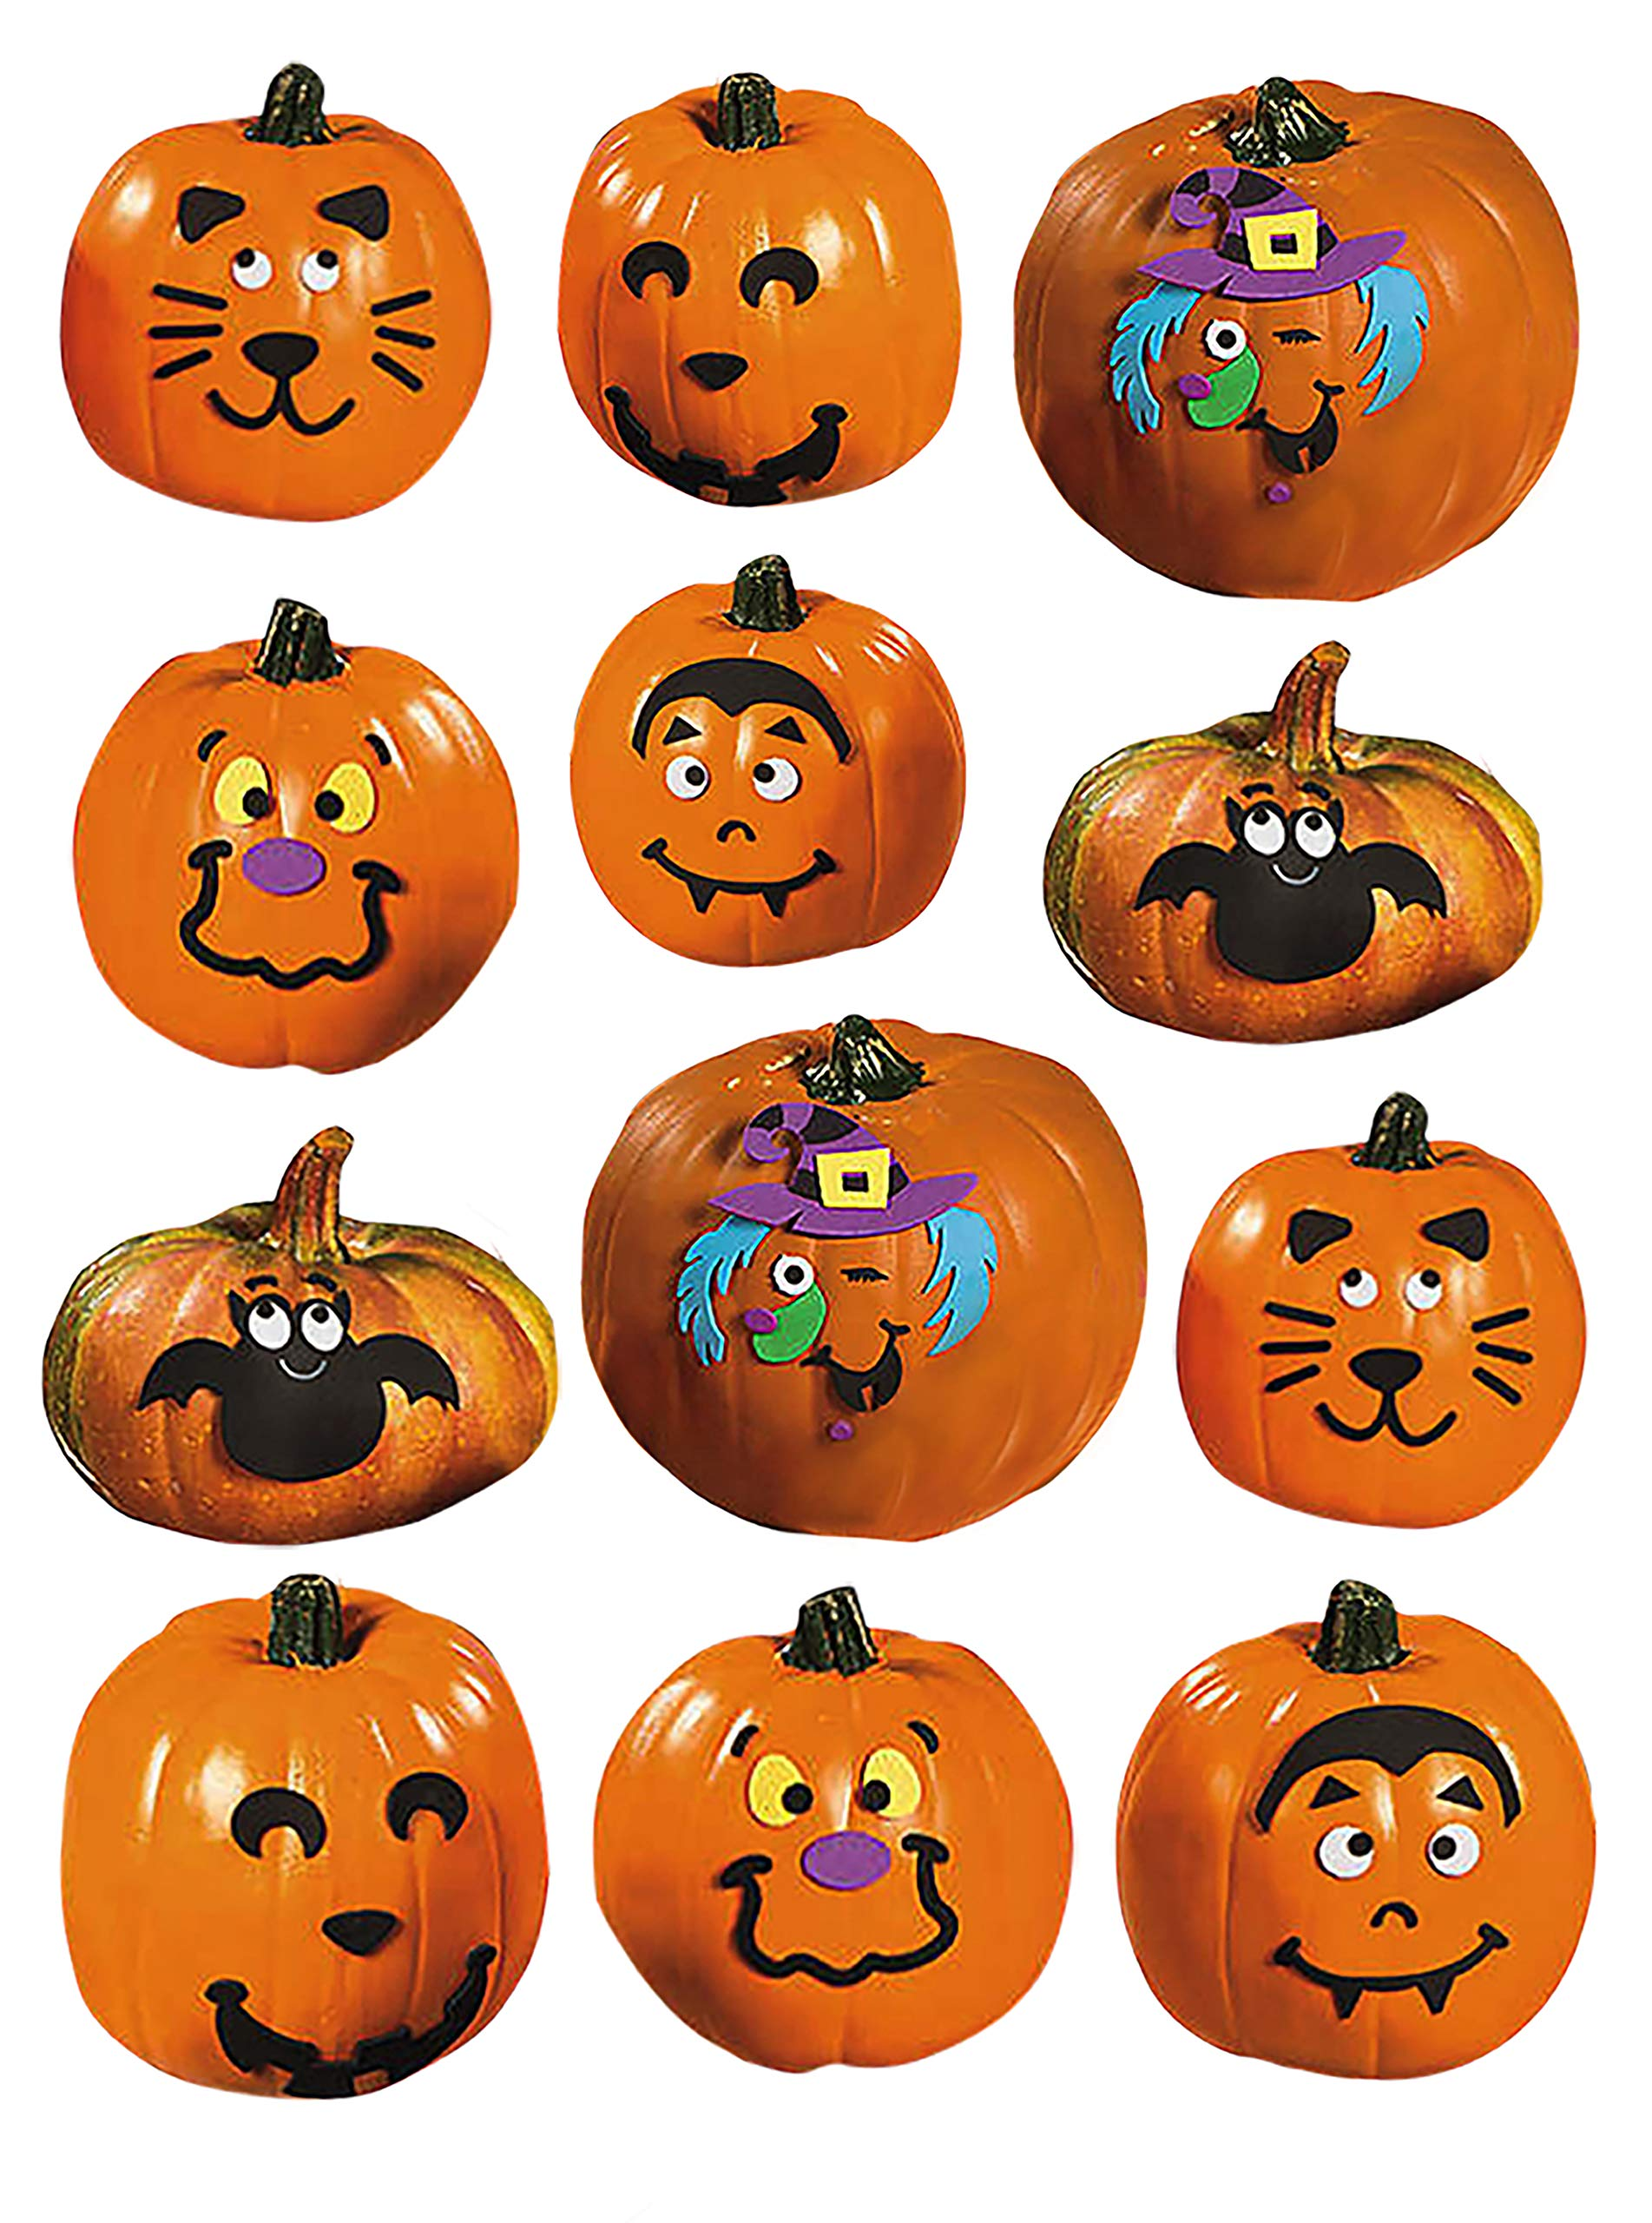 Foam Pumpkin Decorating Kits - Set of 24 Halloween Crafts for Kids by 18th Street Party Supplies (Image #3)